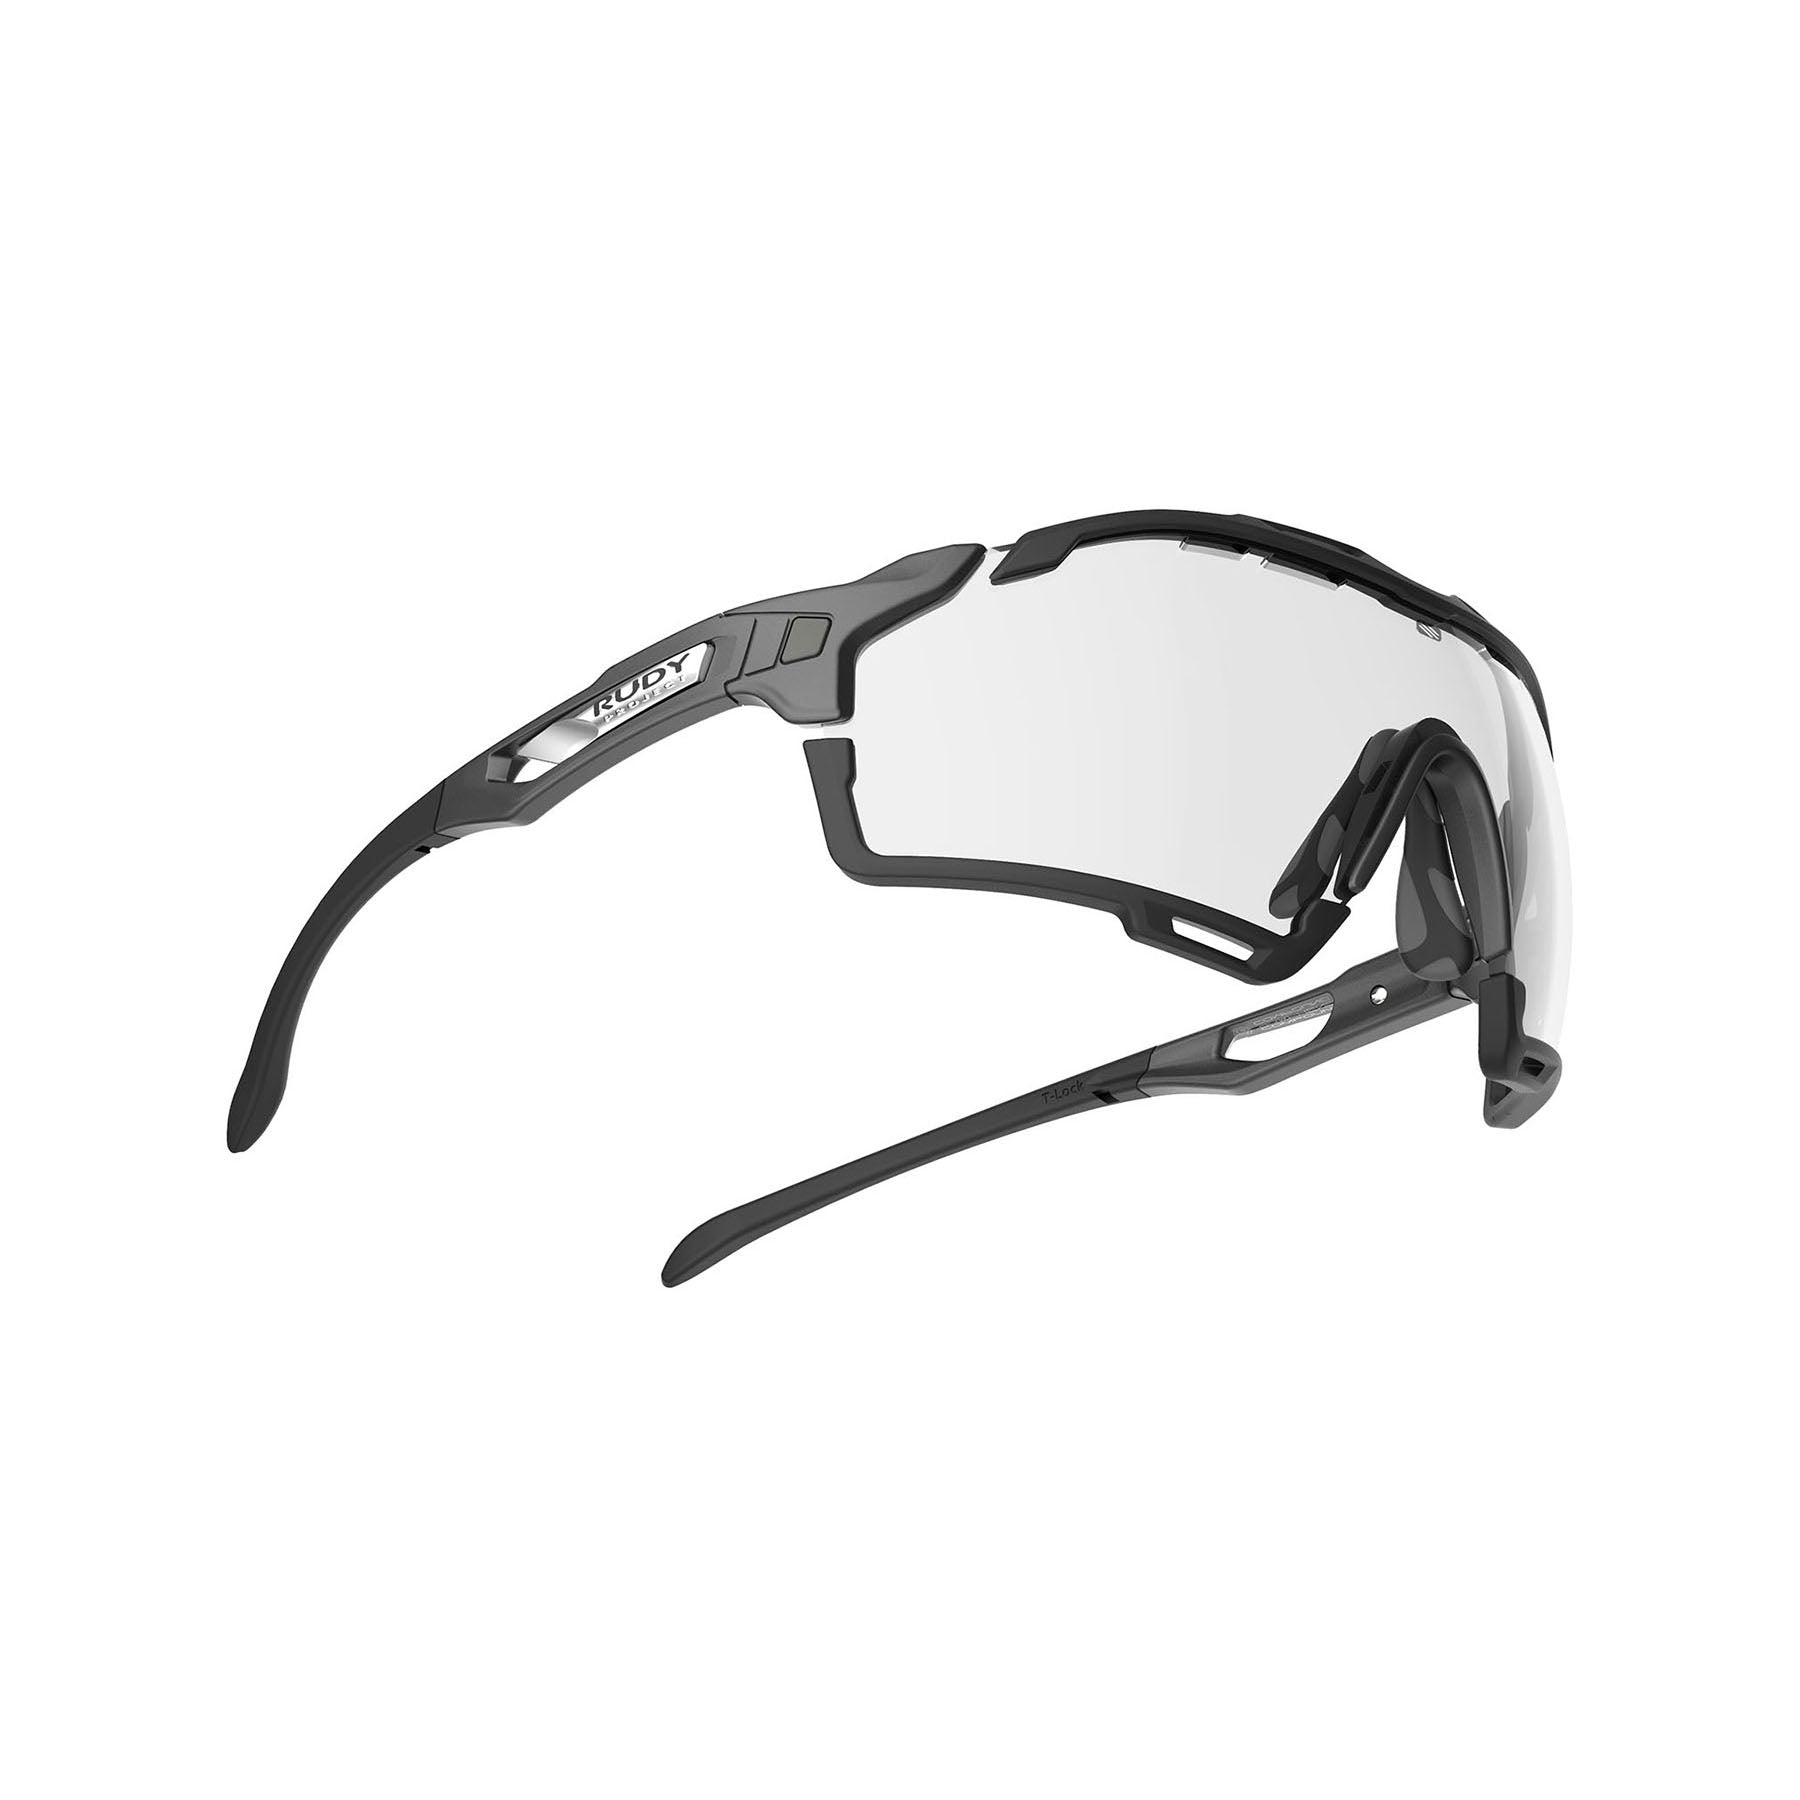 Rudy Project - Cutline - frame color: Graphine Matte - lens color: ImpactX-2 Photochromic Clear to Black - Bumper Color: Black - photo angle: Bottom Front Angle Variant Hover Image